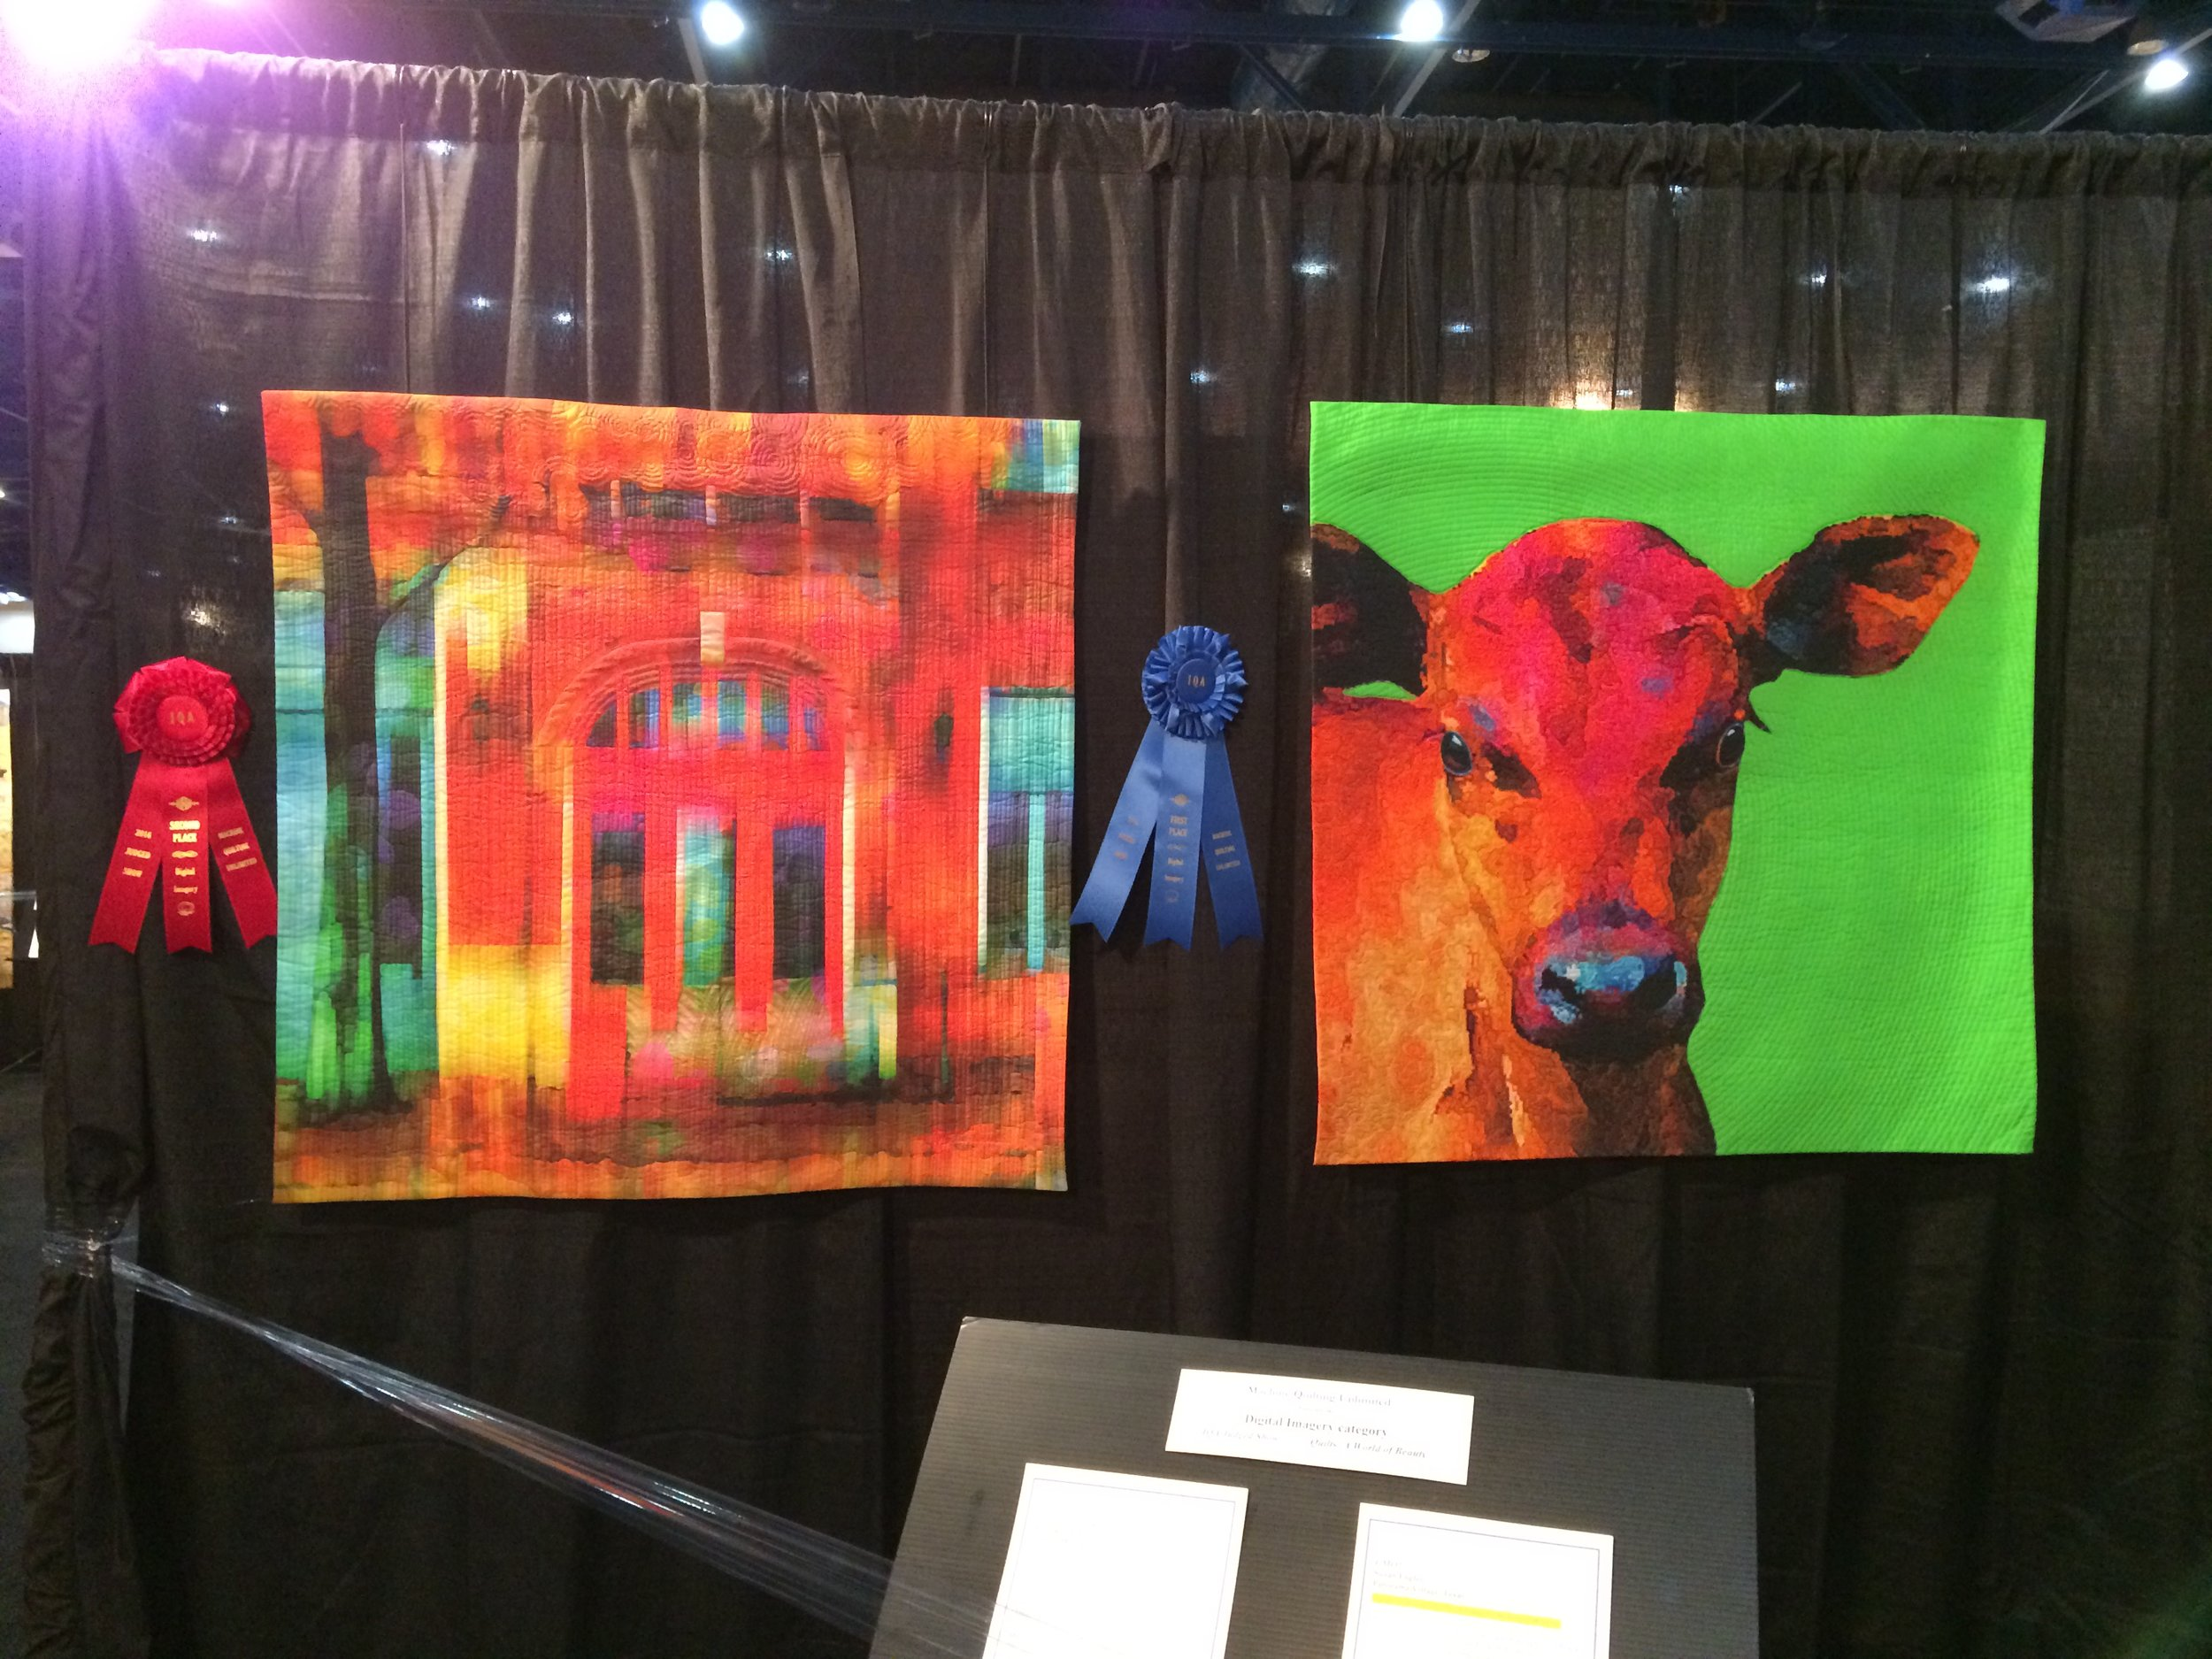 Paint the Town Red  by Diane Rusin Doran and    GMO?  by Suzan Engler